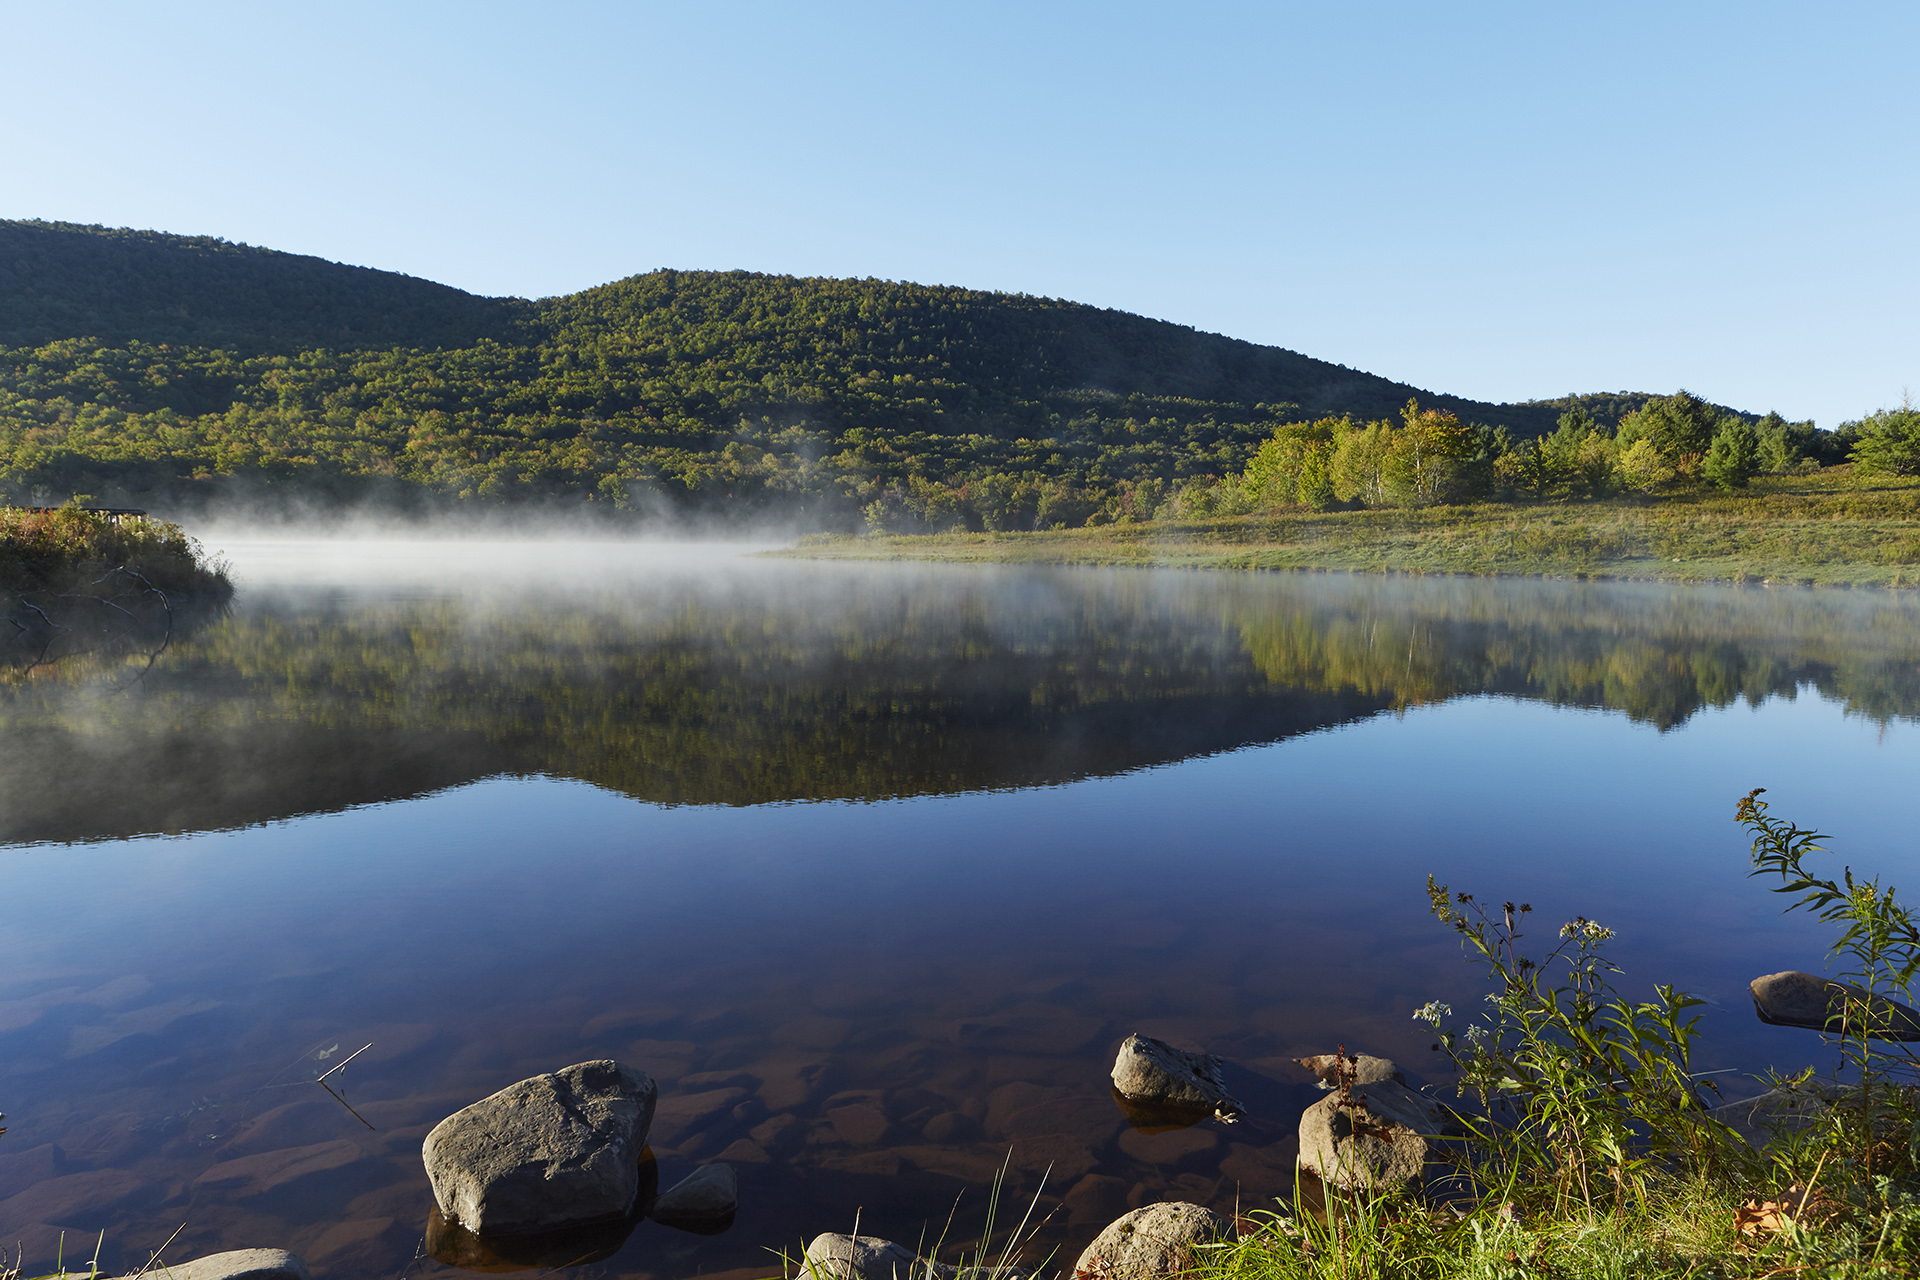 OutdoorFest Upstate - at Camp Tri-Mount in East Jewett, New York